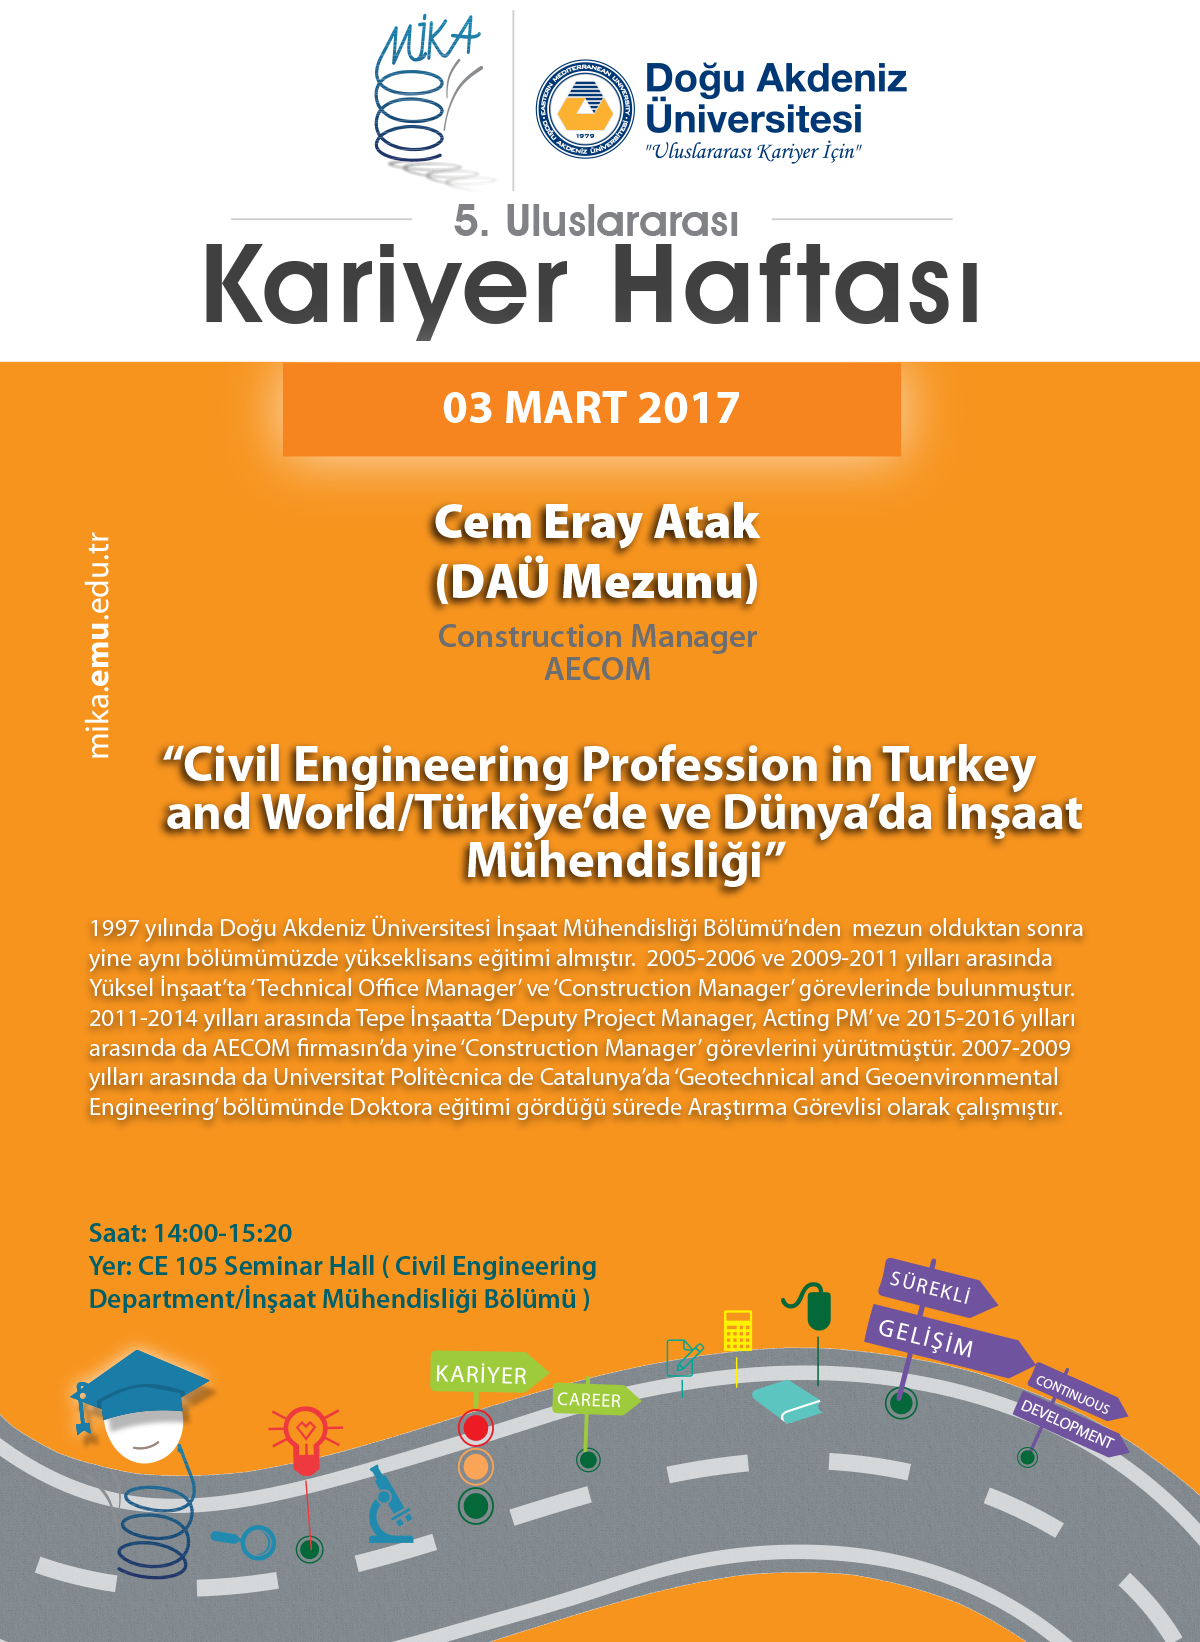 Civil Engineering Profession in Turkey and World